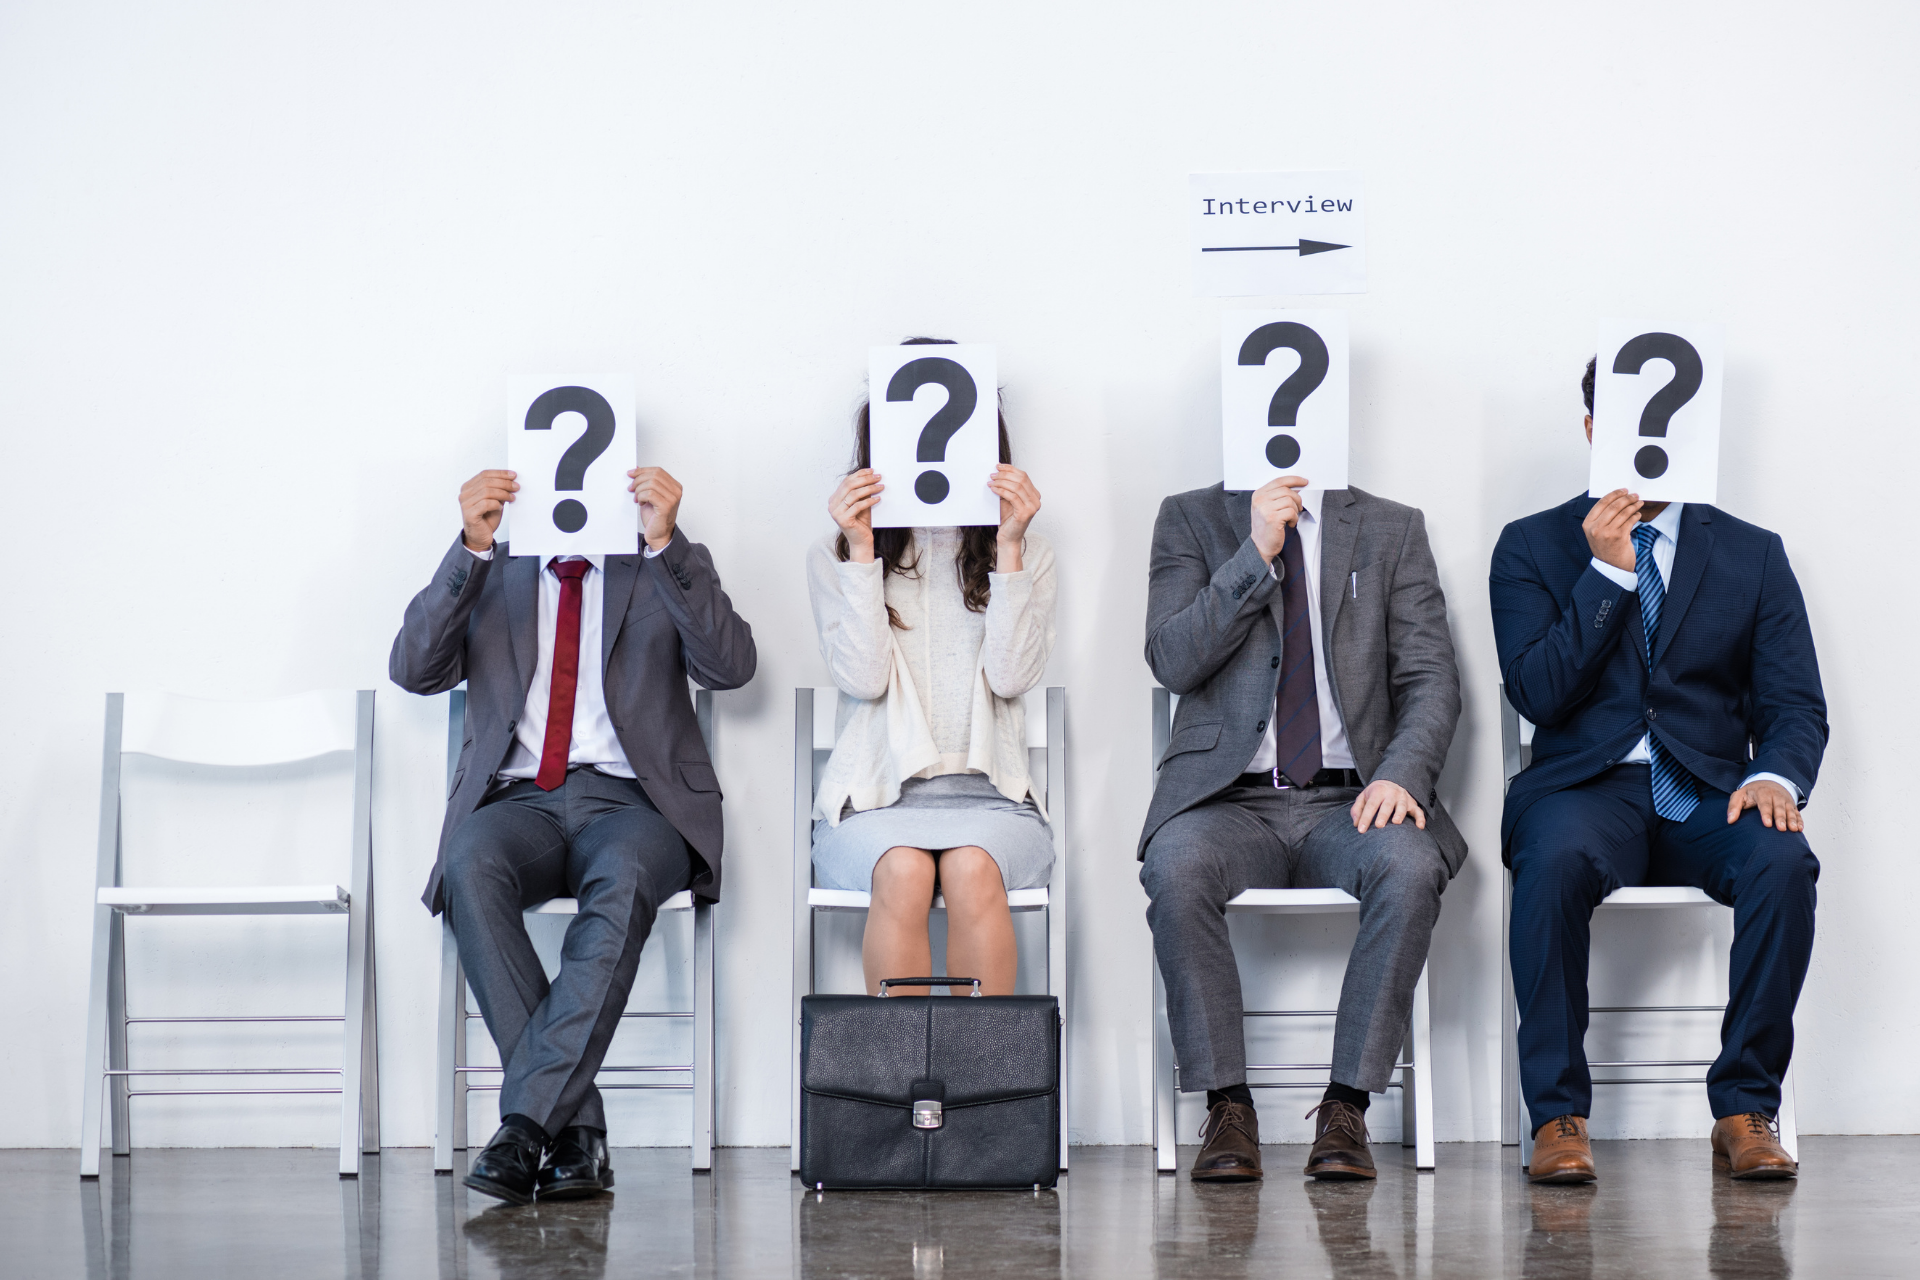 A lineup of potential employees with question marks covering their faces